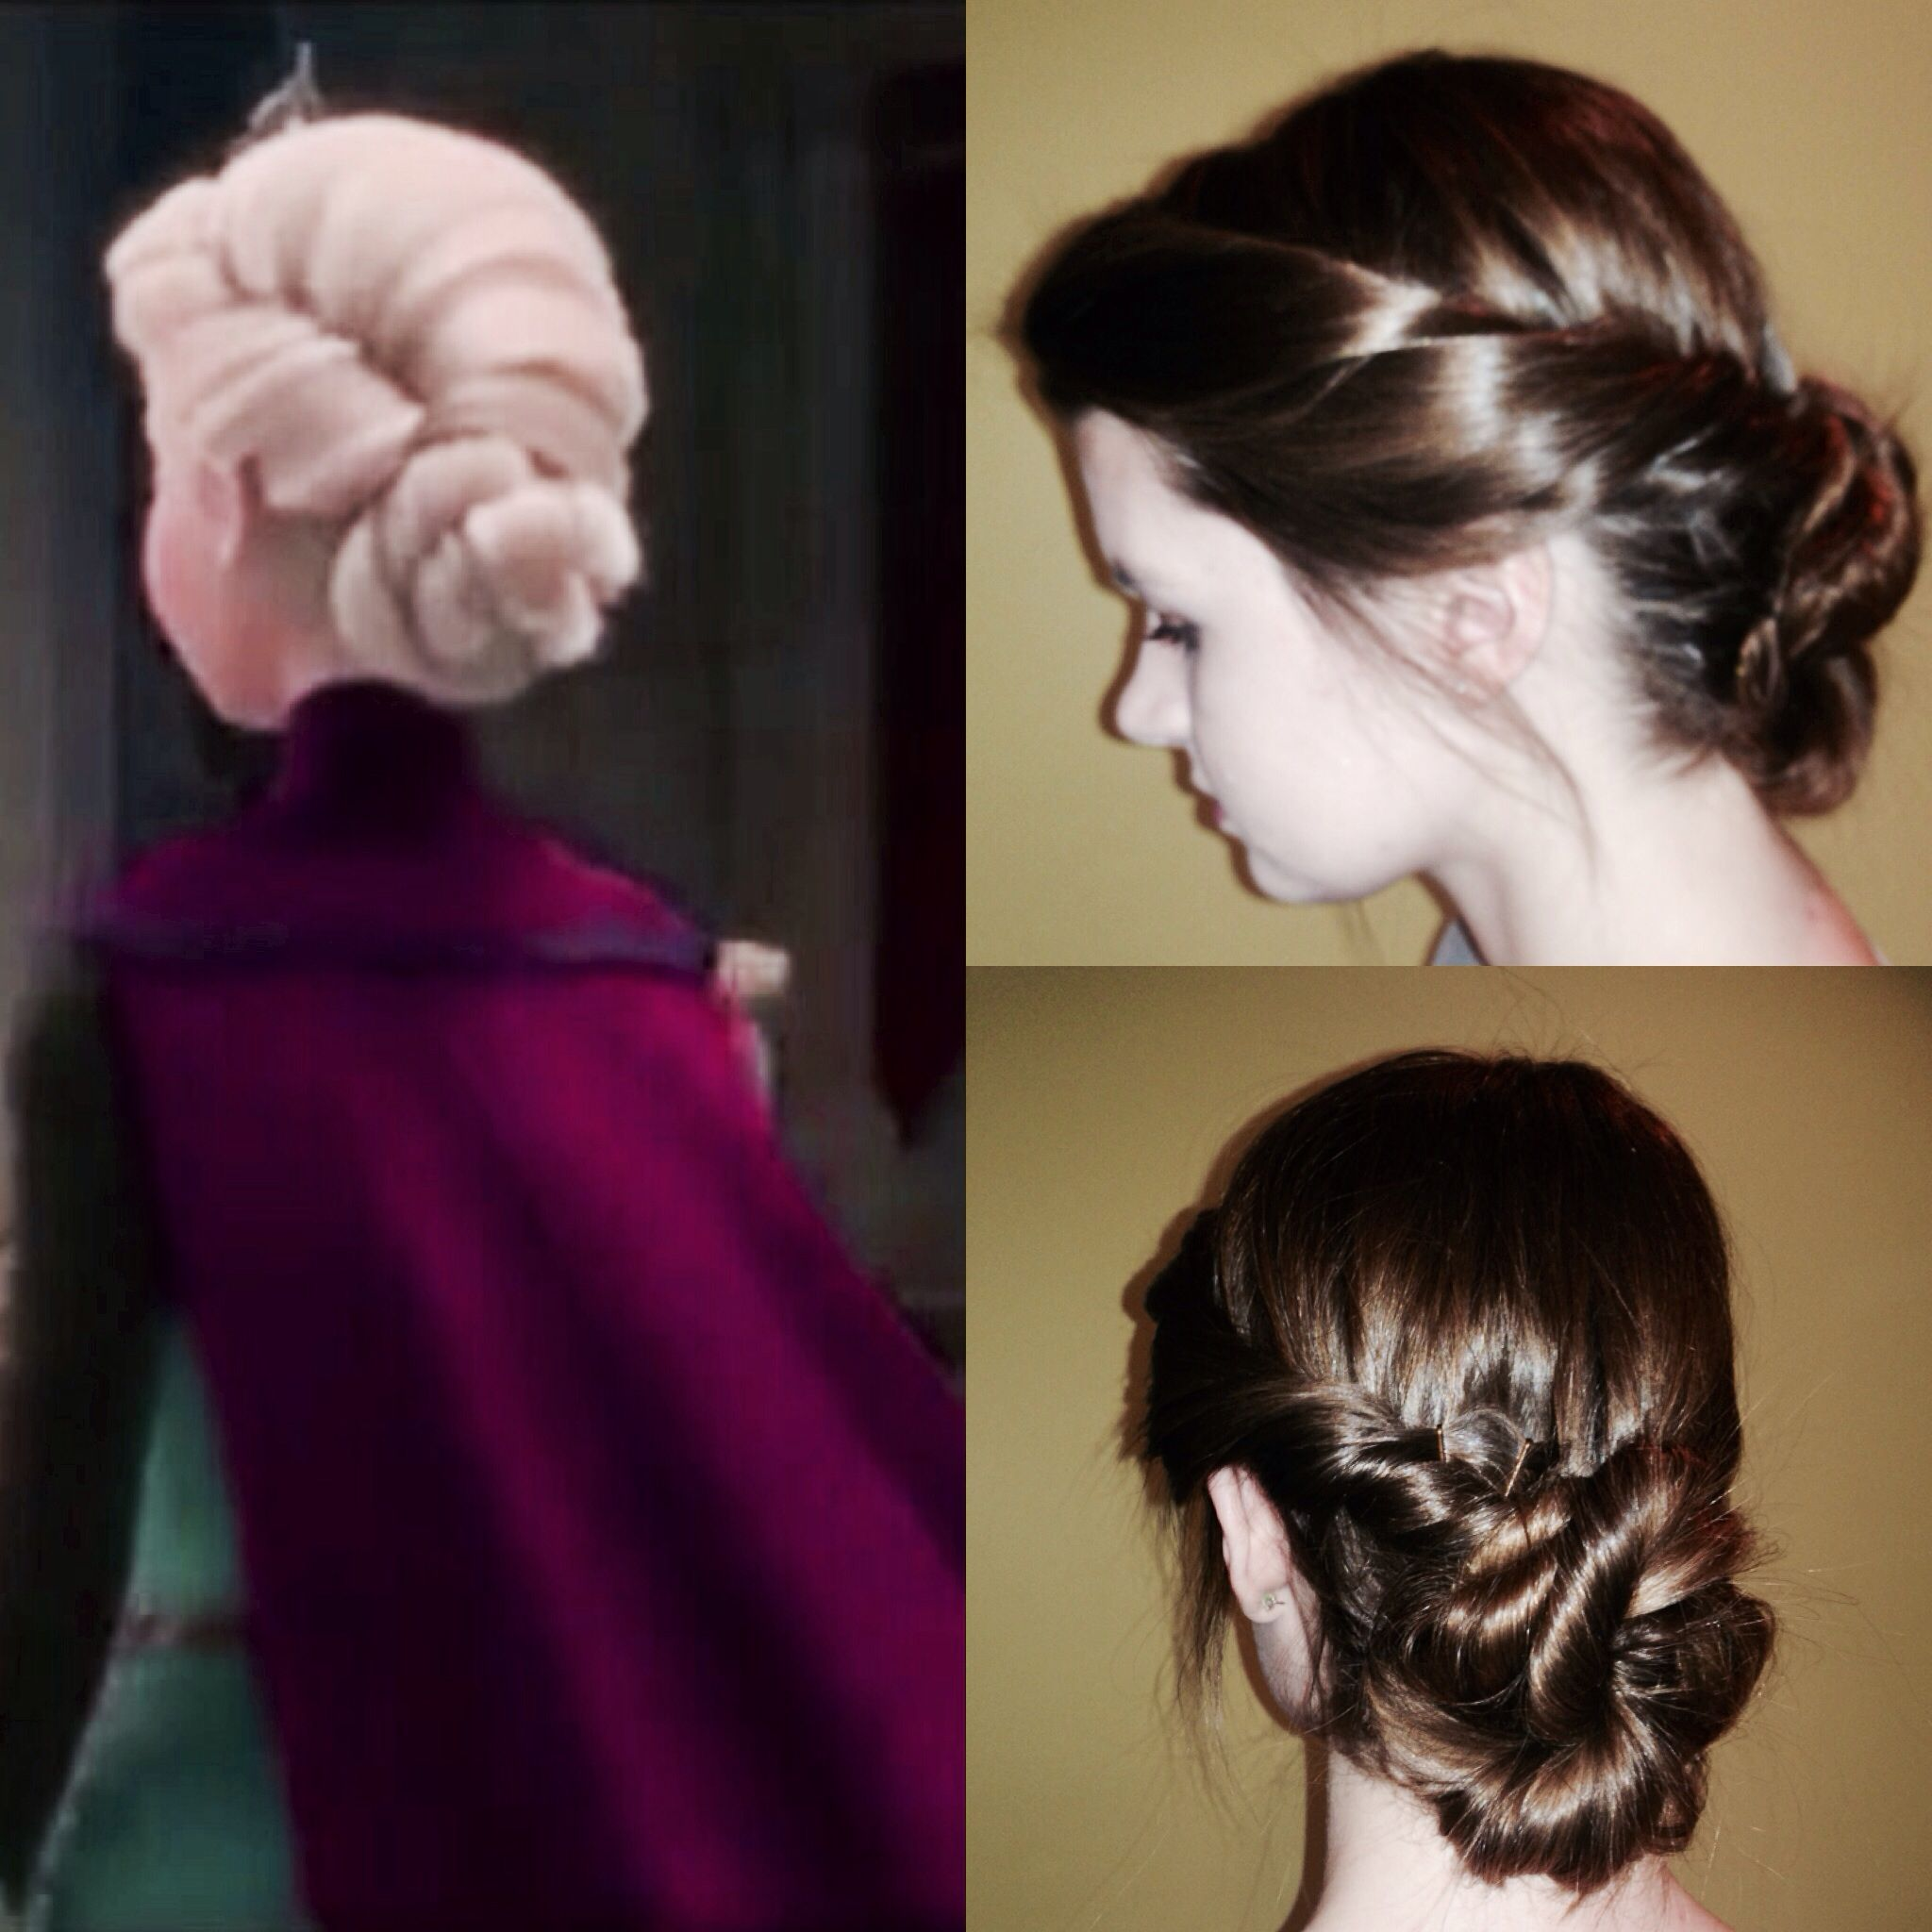 Queen Elsa S Coronation Hair From Frozen By Riccardo Roodt Roodt Roodt Perello Watson